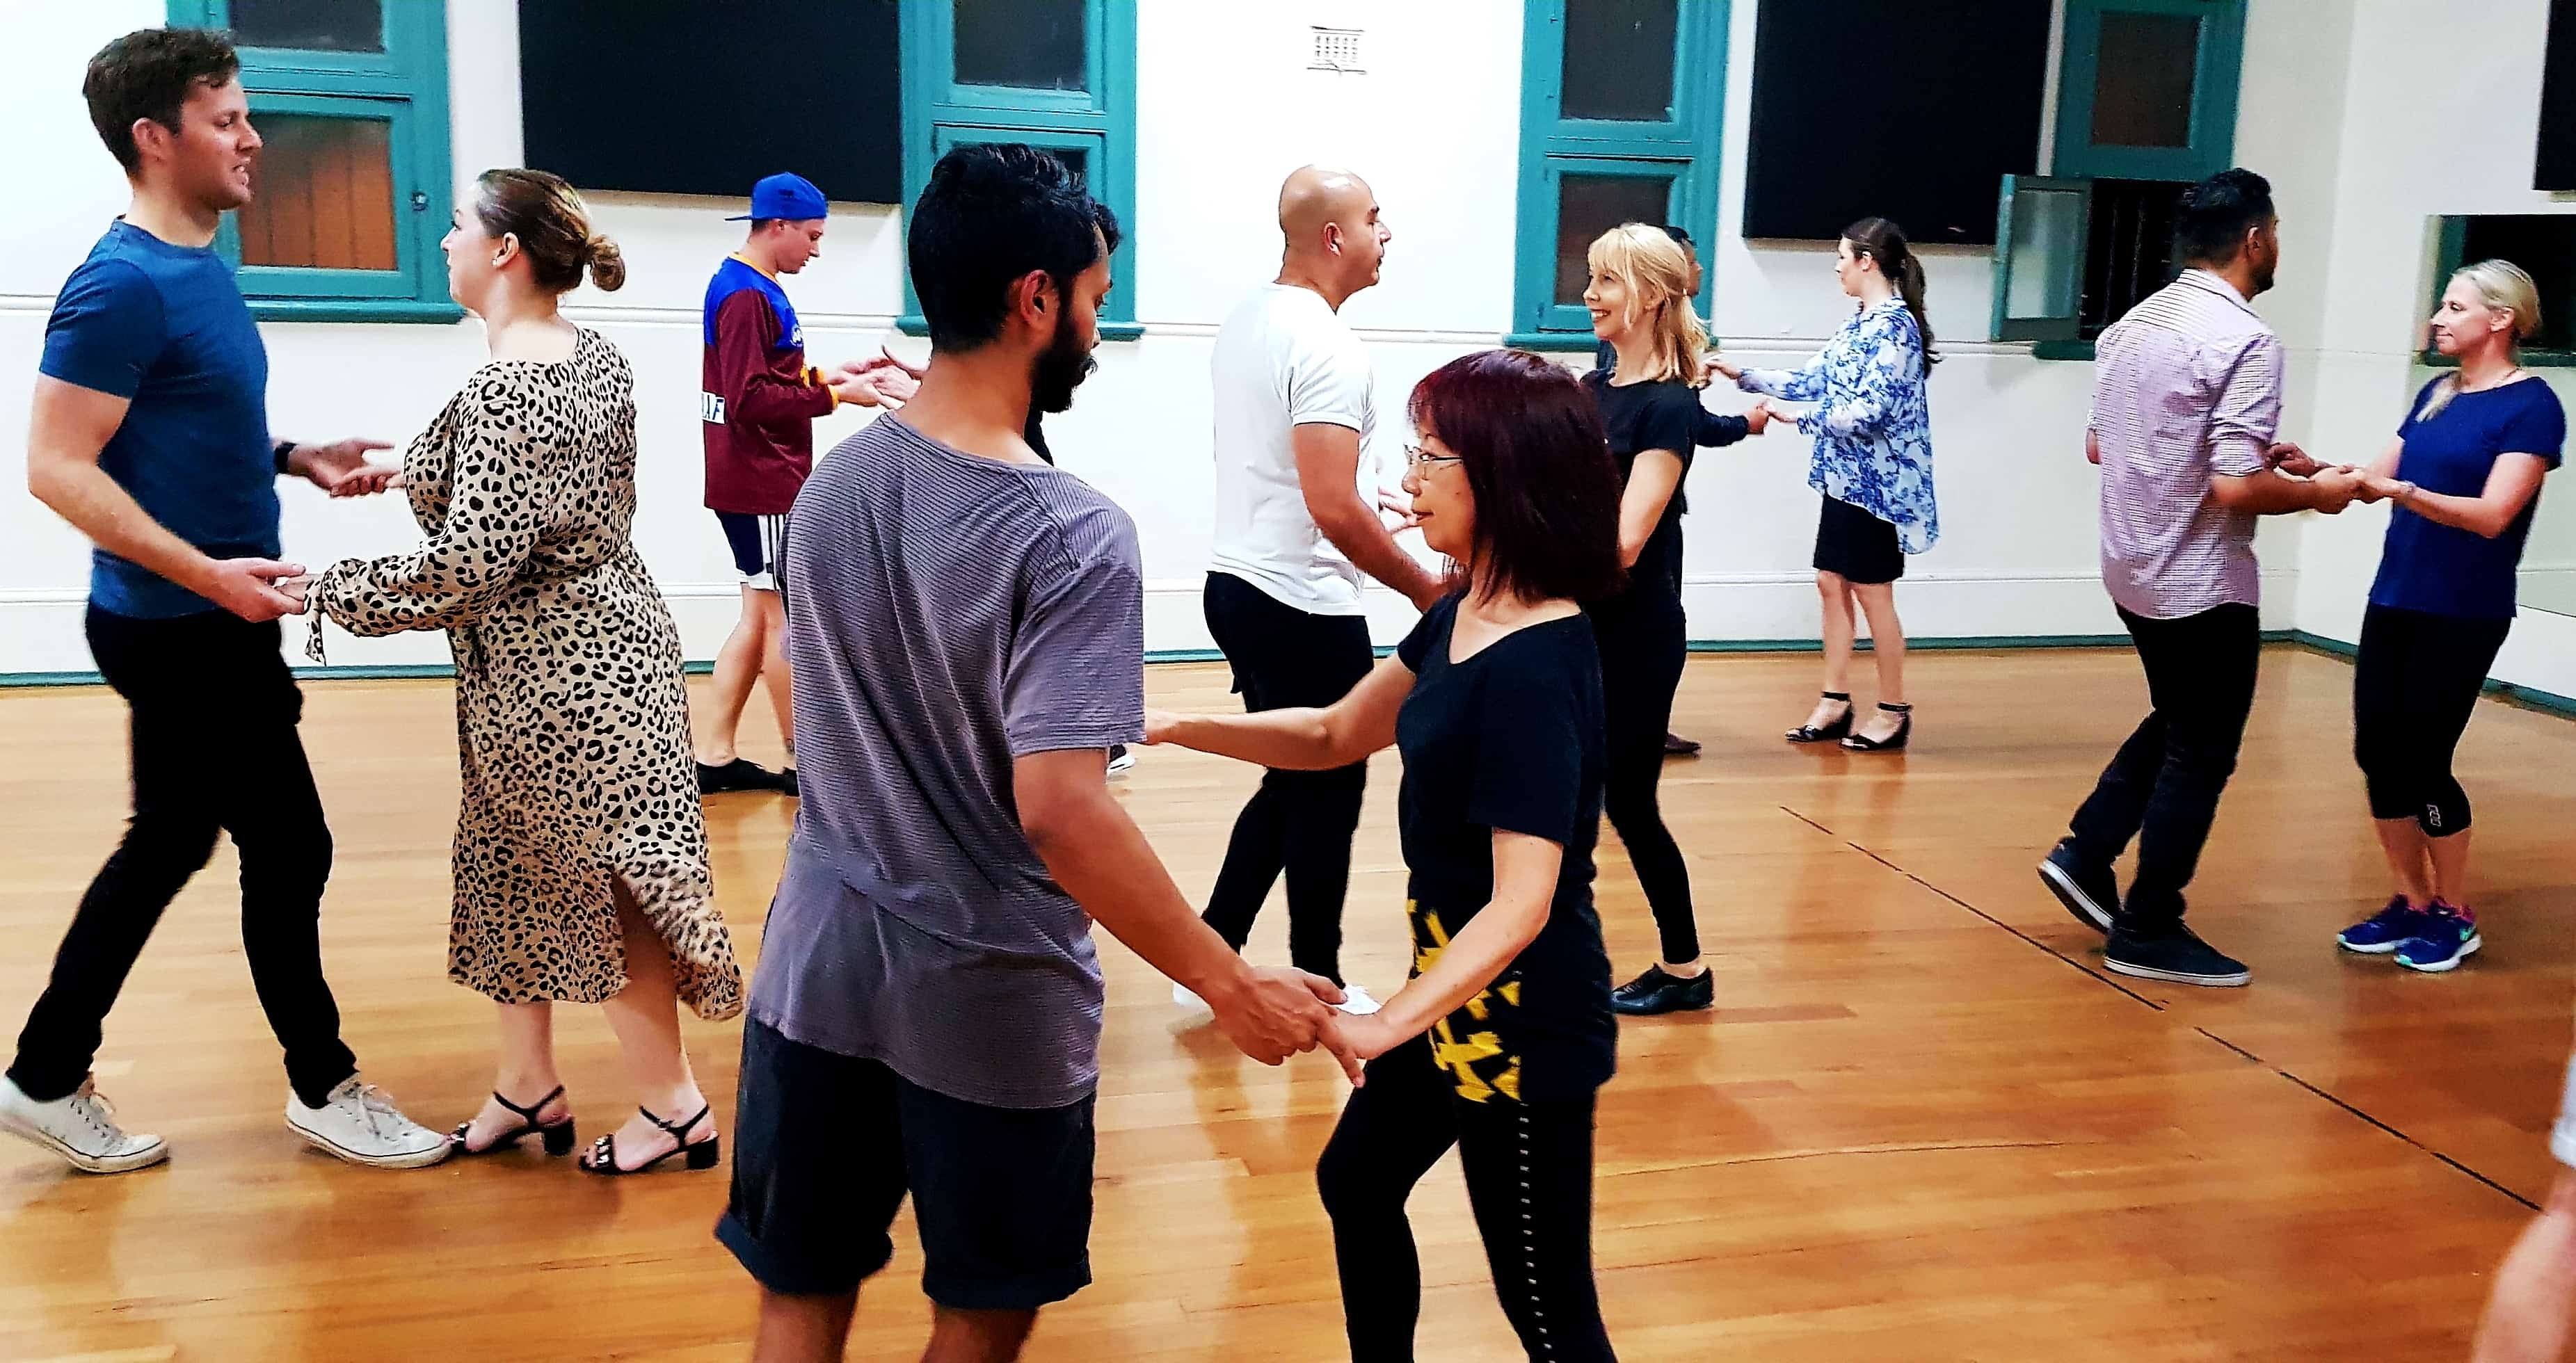 emily dancing with student